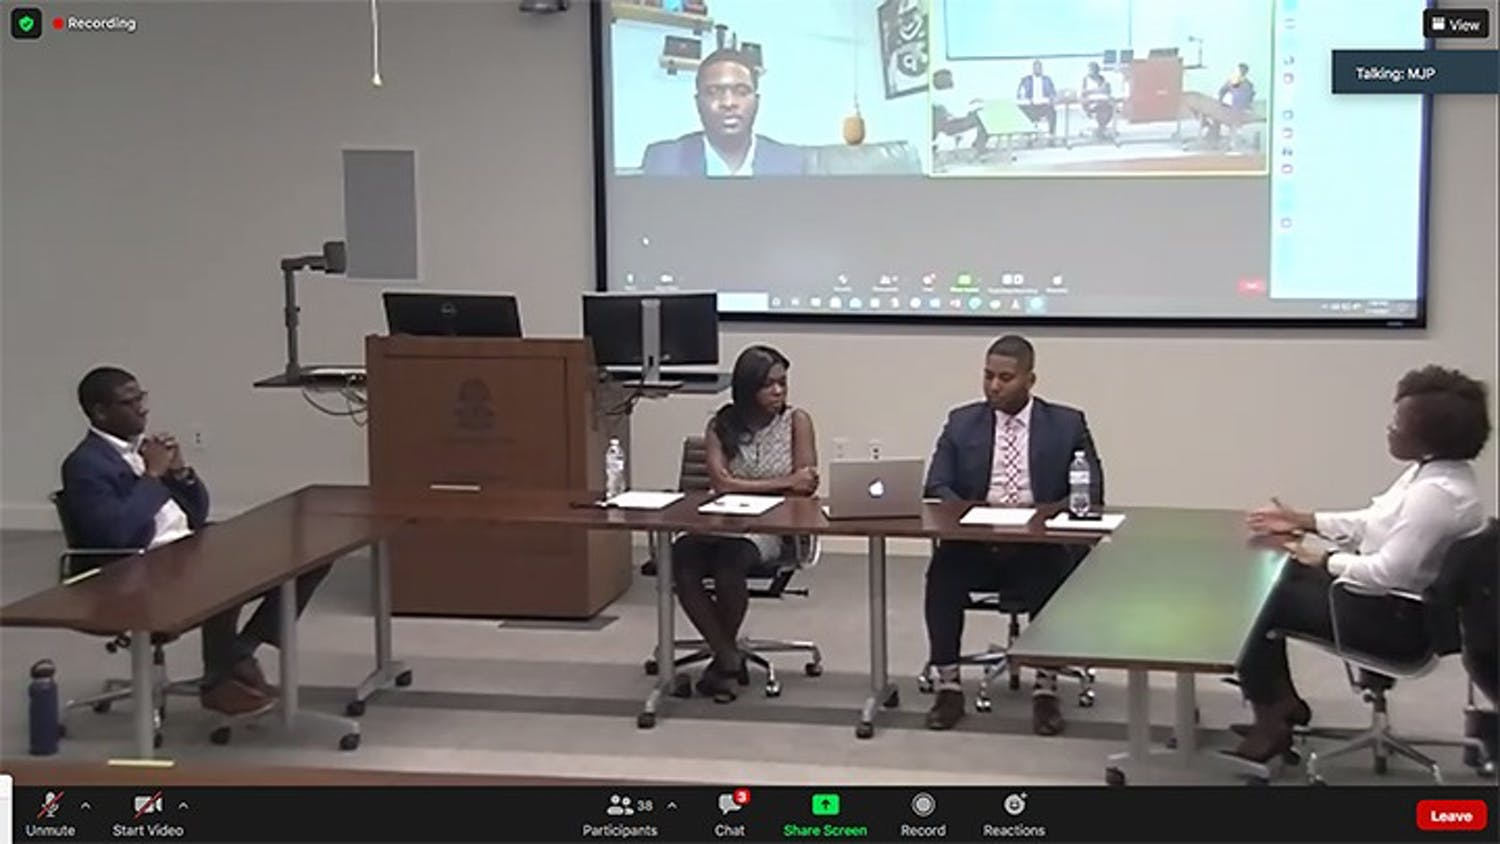 Lyric Swinton (right) speaks during a Thursday virtual panel held by the National Black Law Students Association. The group discussed issues regarding social injustice and making changes moving forward.